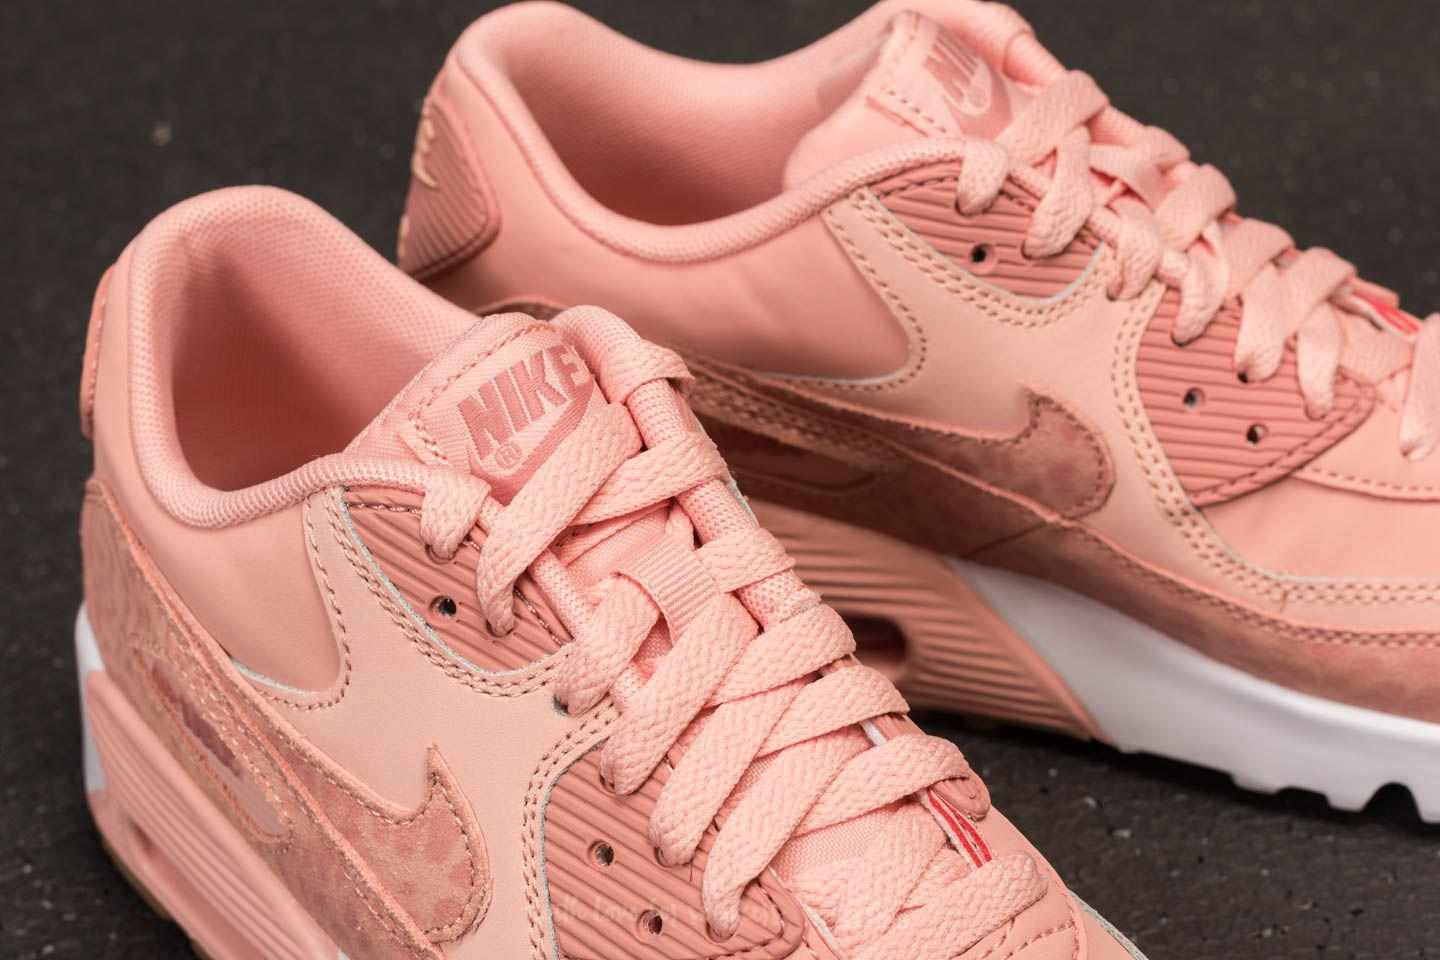 95cba8a3bc59 Lyst - Nike Air Max 90 Leather Se GG Coral Stardust  Rust Pink-white ...